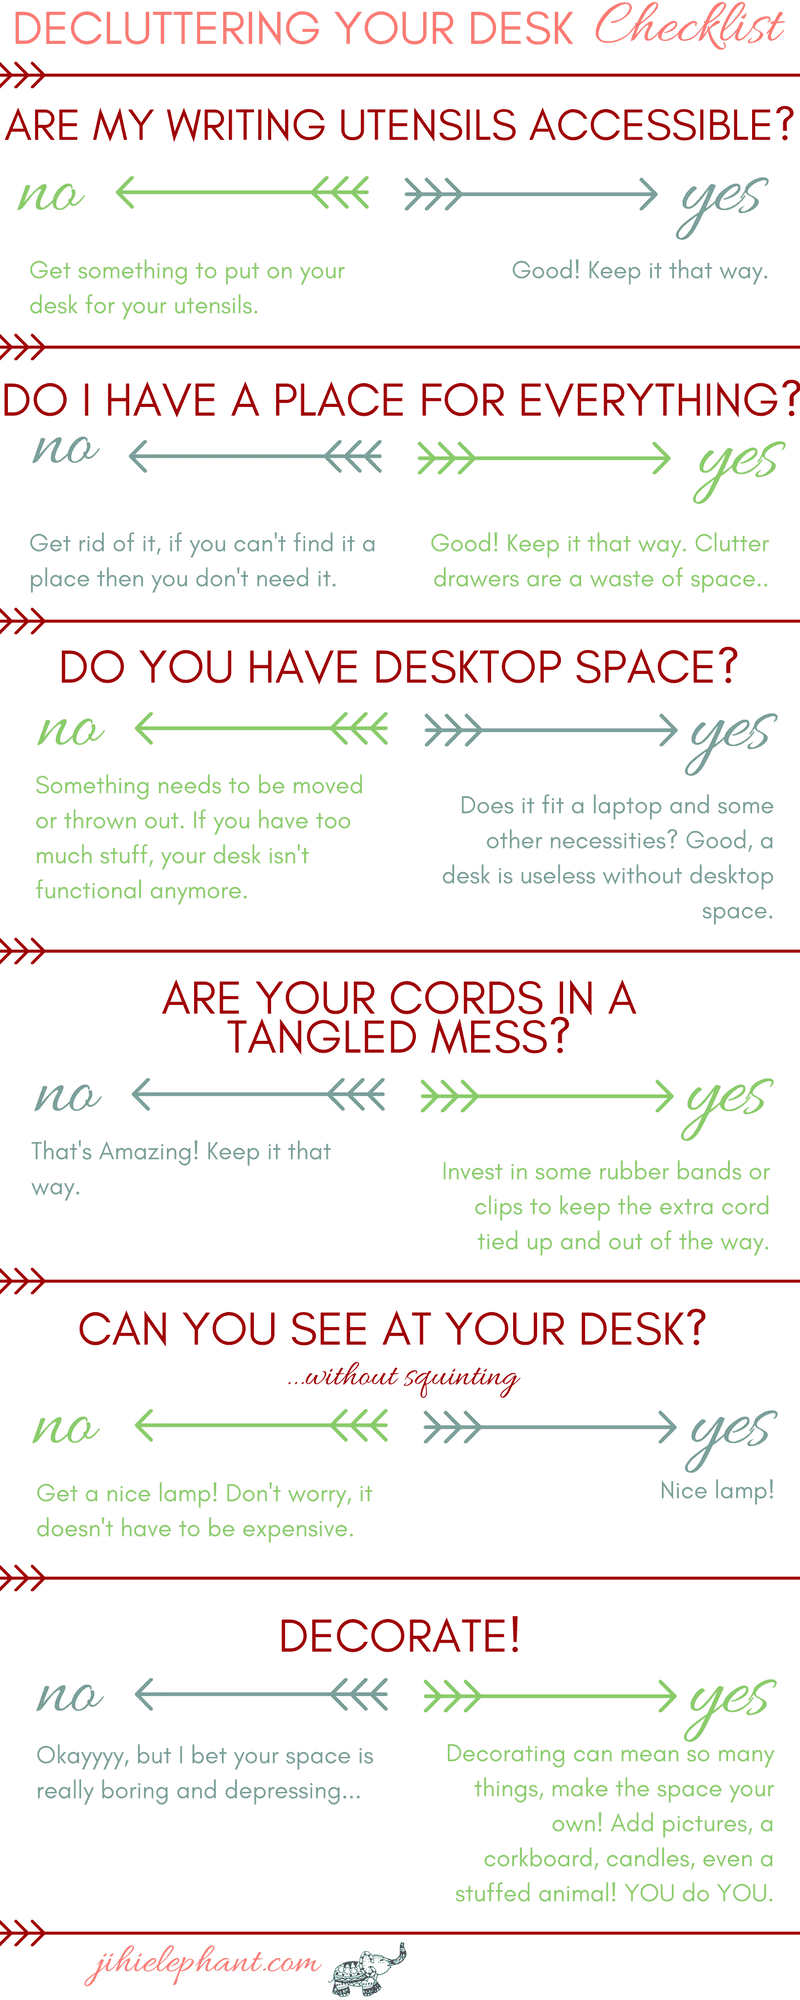 6 ways to declutter your desk space